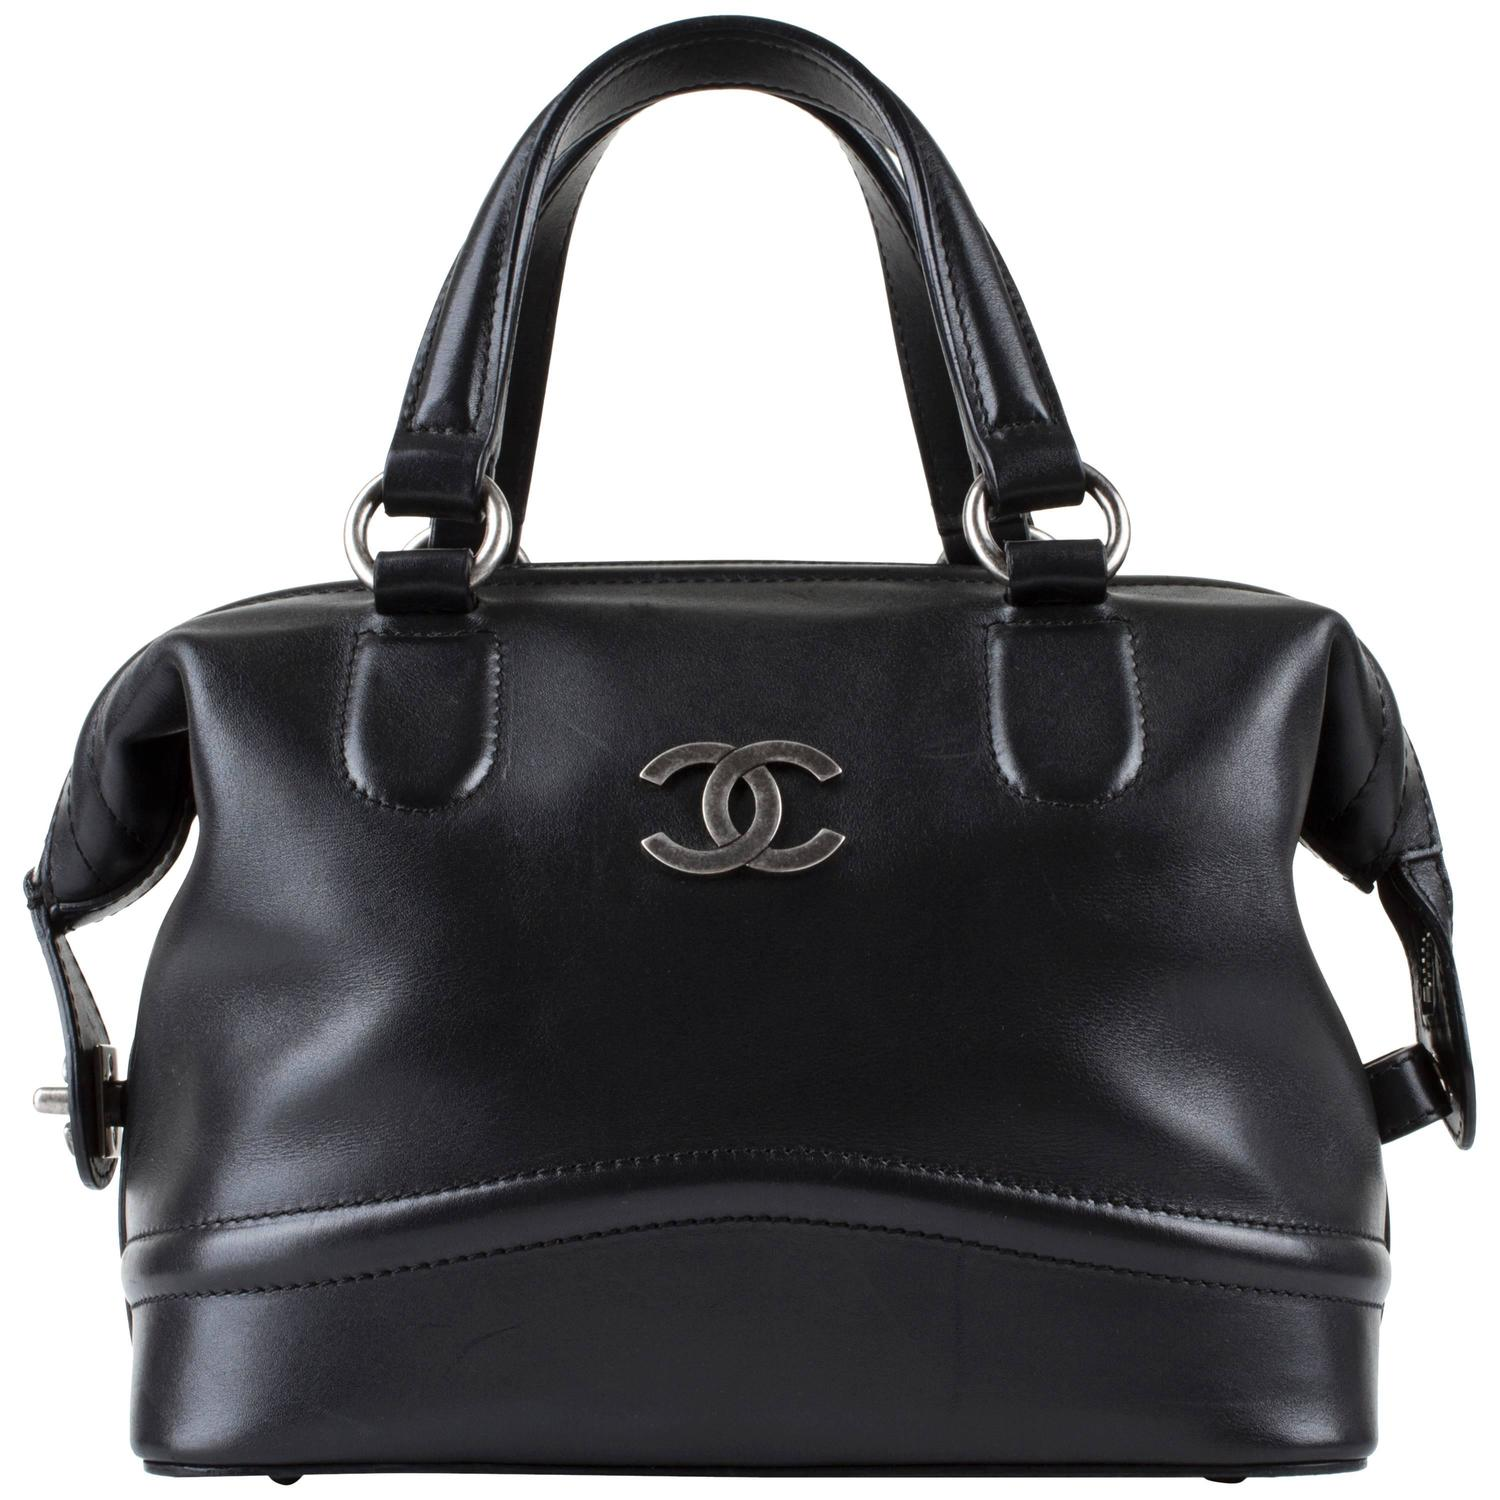 Chanel Black Calf Leather Country Ride Bowler Doctor Satchel Bowling Handbag Rare For Sale At 1stdibs